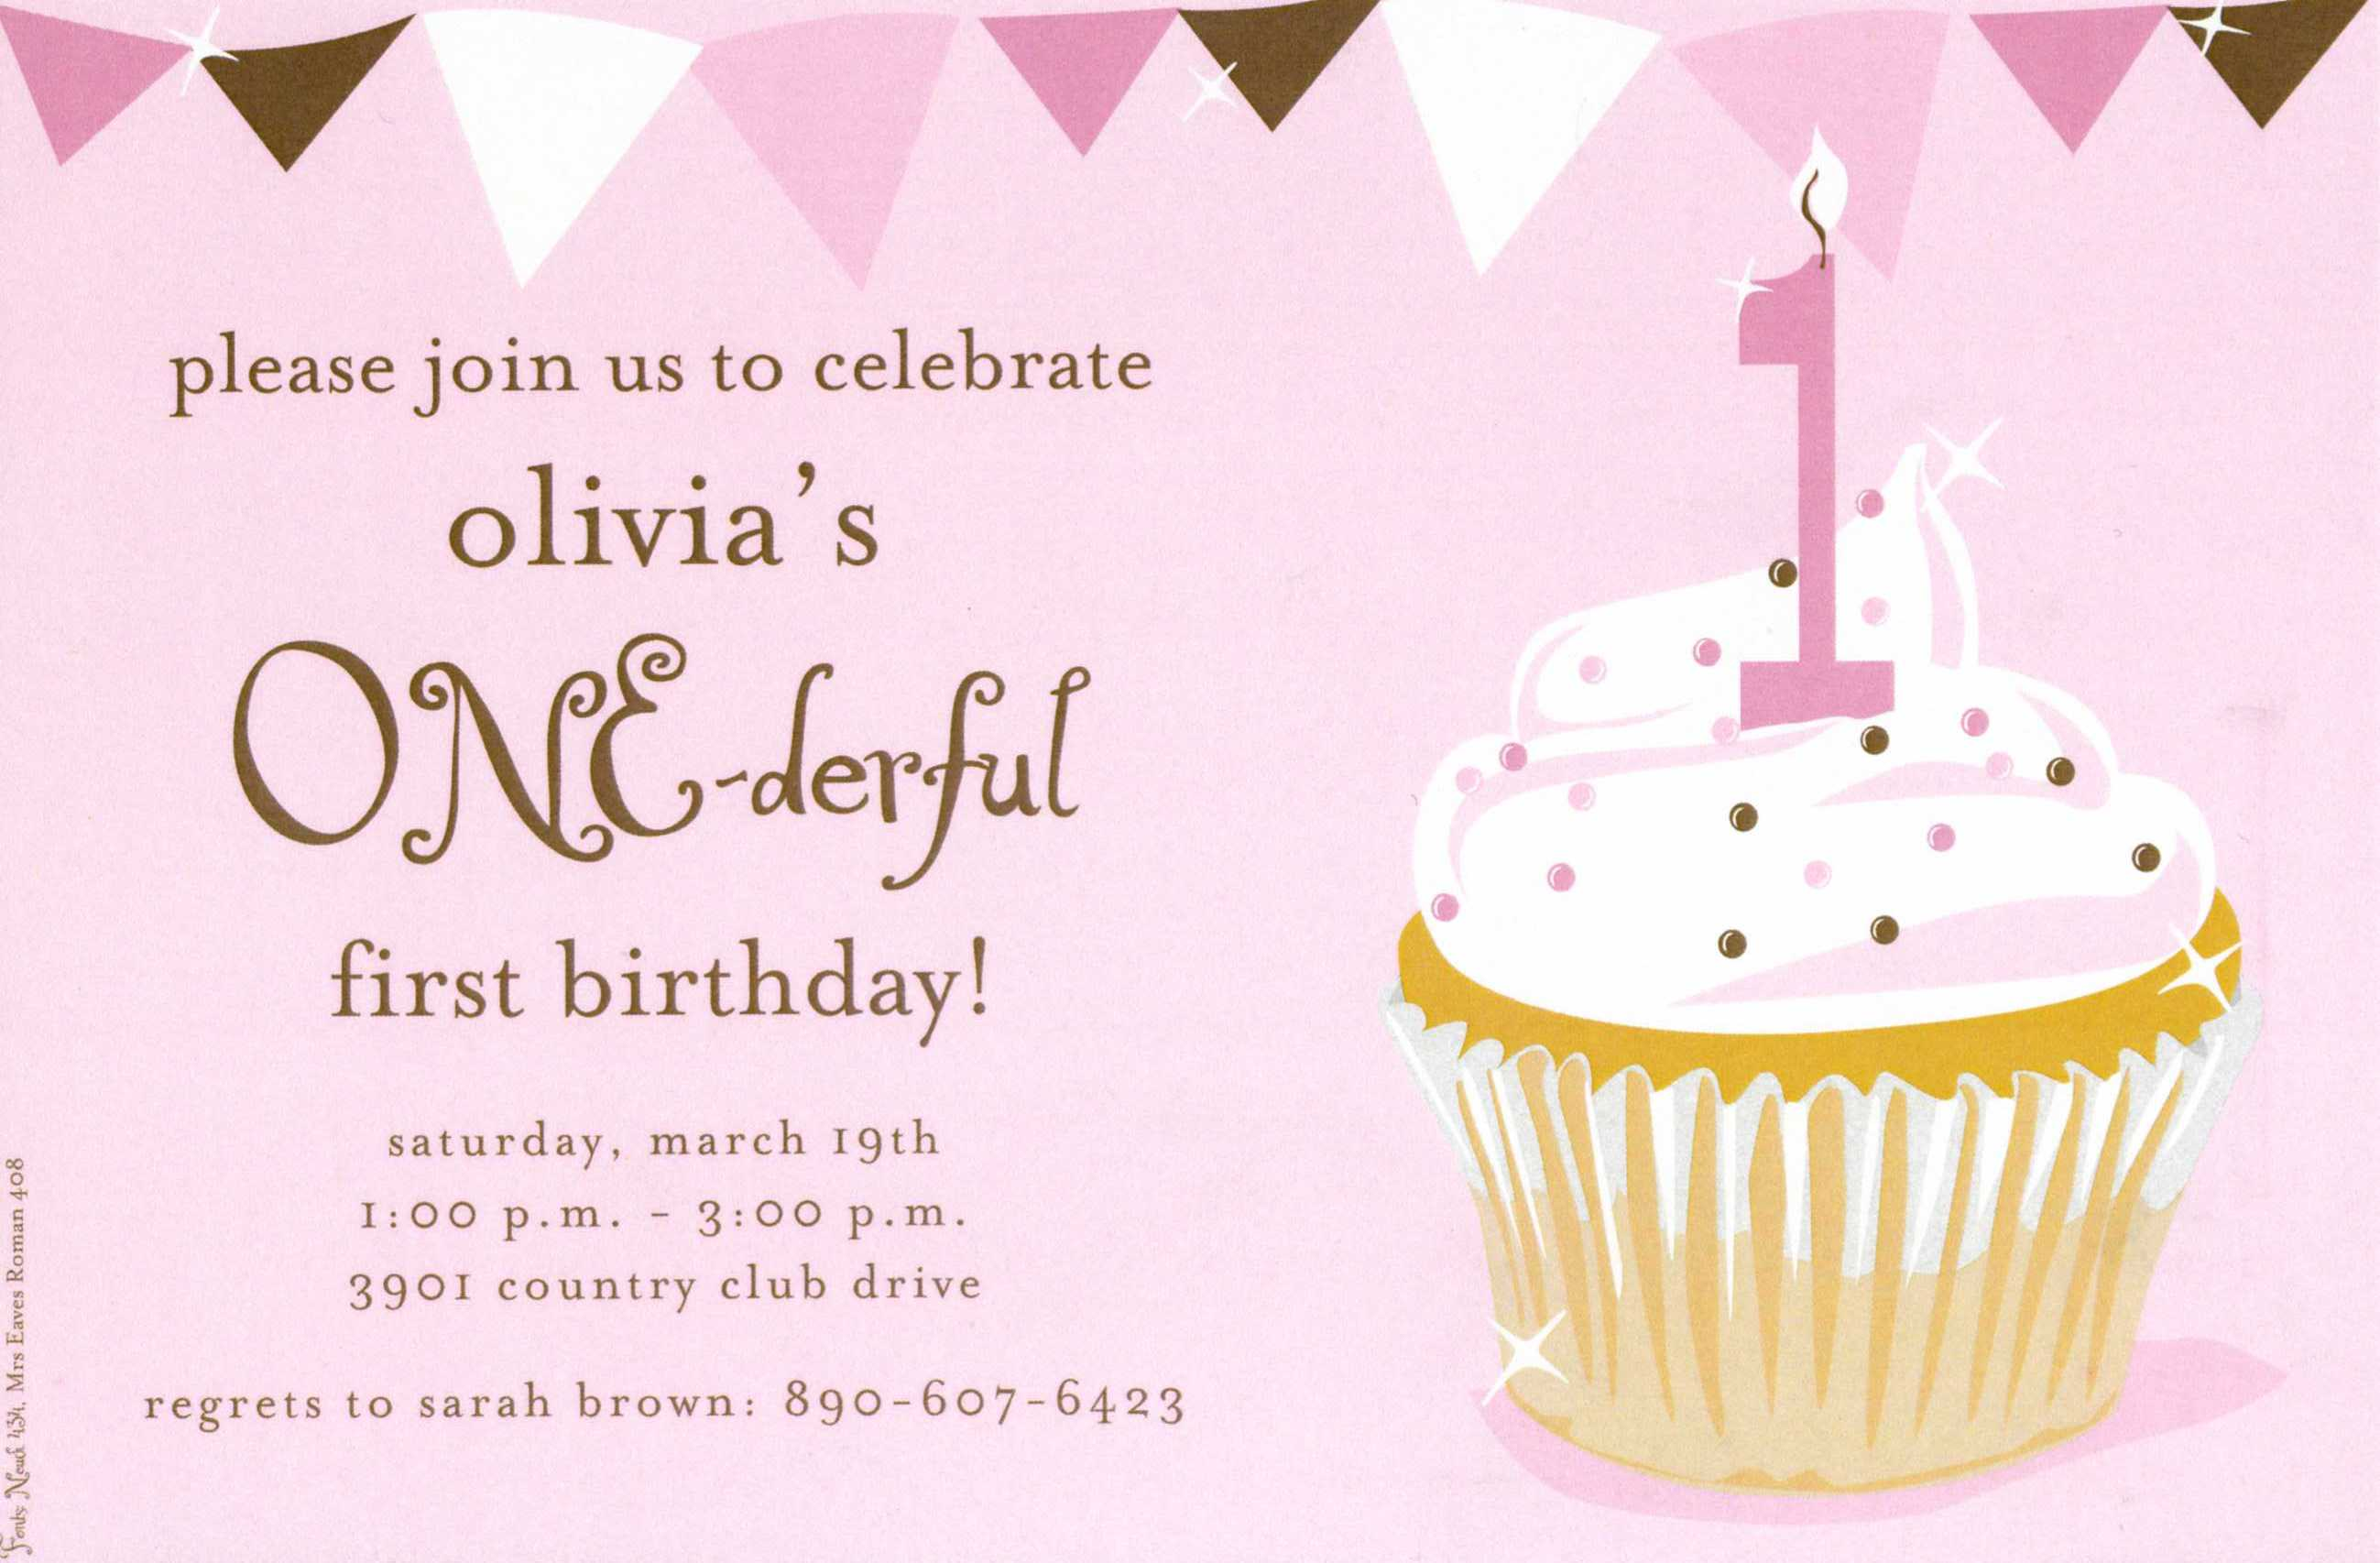 One-derful Girl Invitation - This beautiful light pink invitation features a cupcake with 1 candle.  Pink with brown accents.  Available blank or personalized.  Includes white envelope.